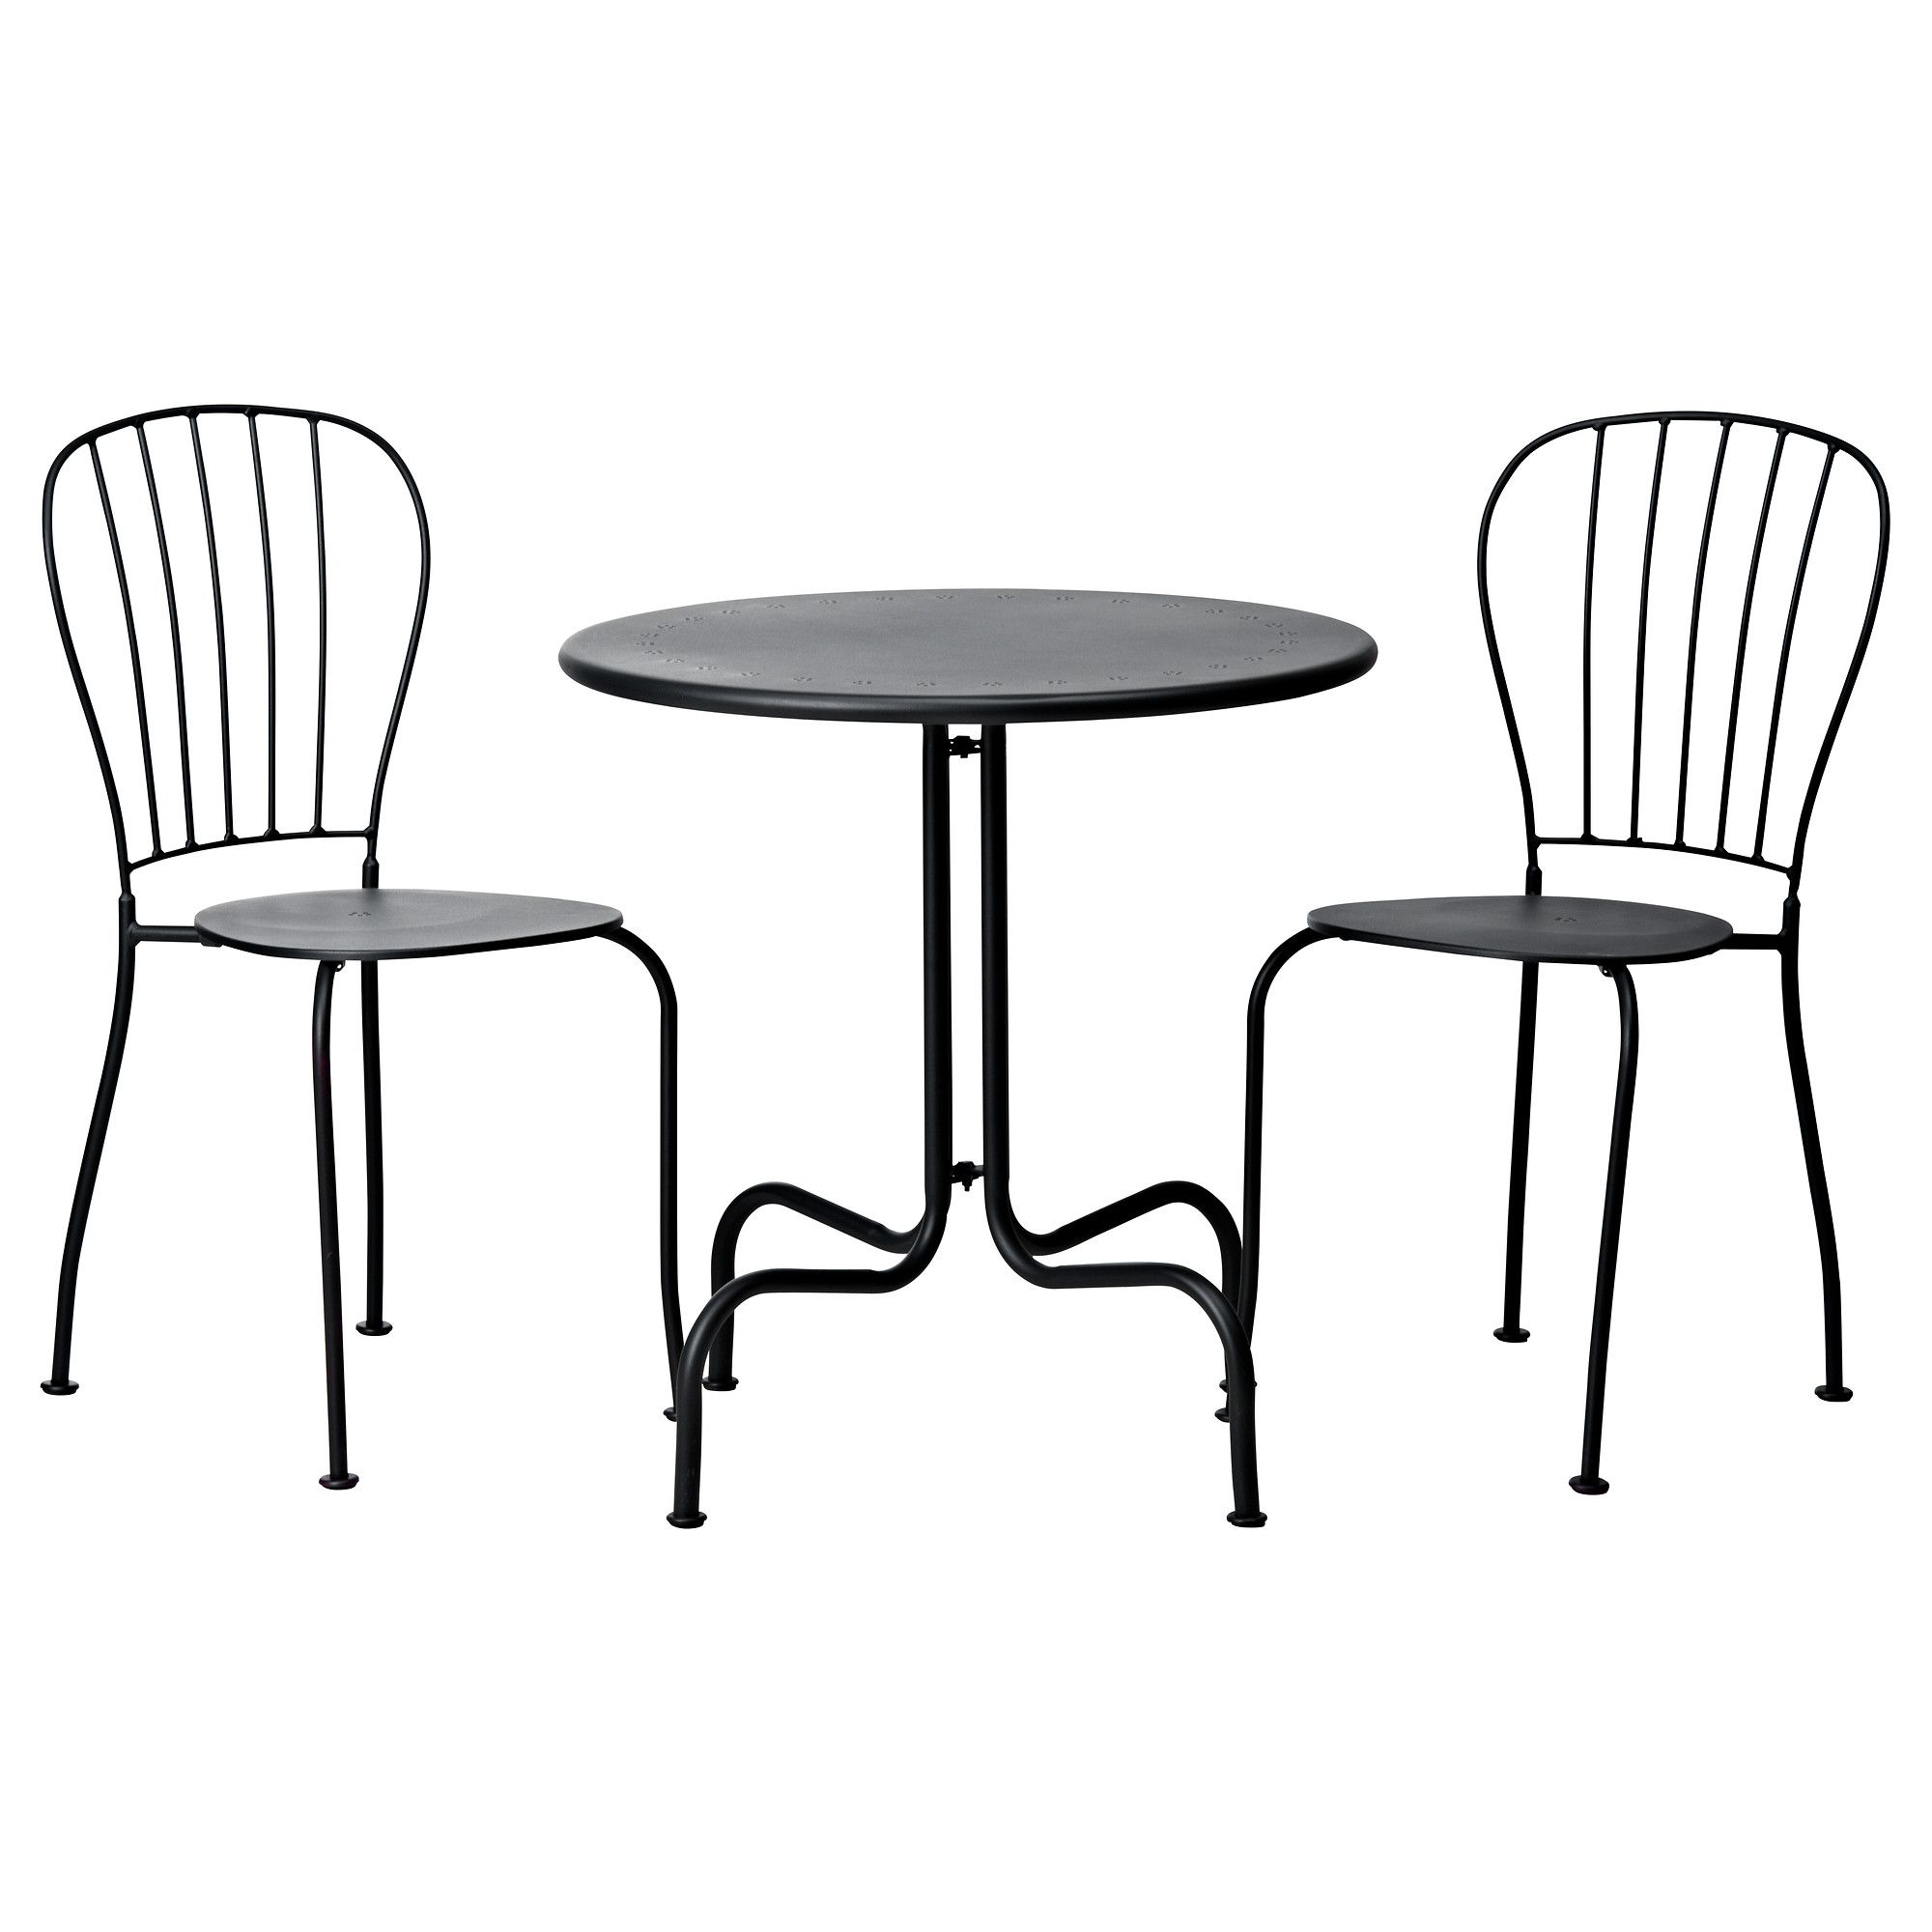 Resistant rattan effect outdoor patio dining set with round table - L Ck Bistro Set Gray Ikea For Front Porch Could Spray Paint Any Color